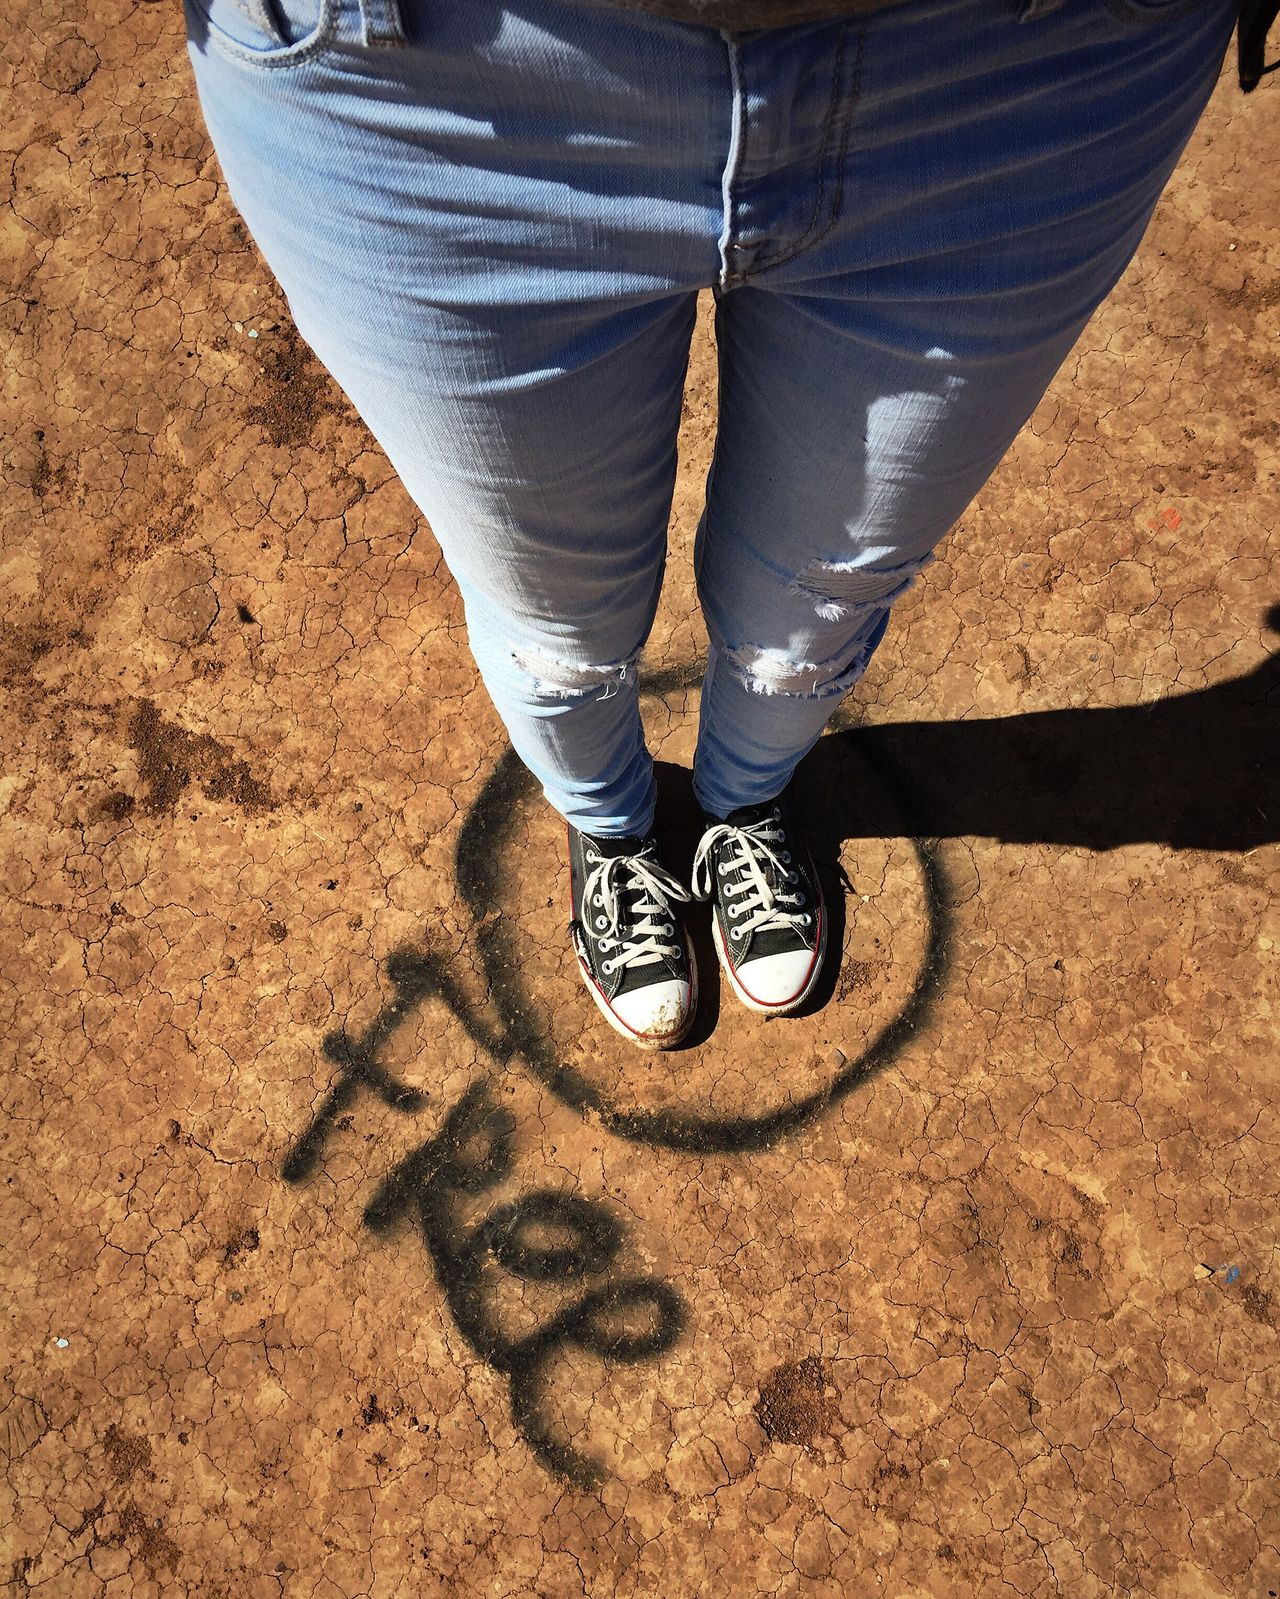 Finding New Frontiers Freedom Free Jeans Texas All Star Artistic Tumblr EyeEmNewHere